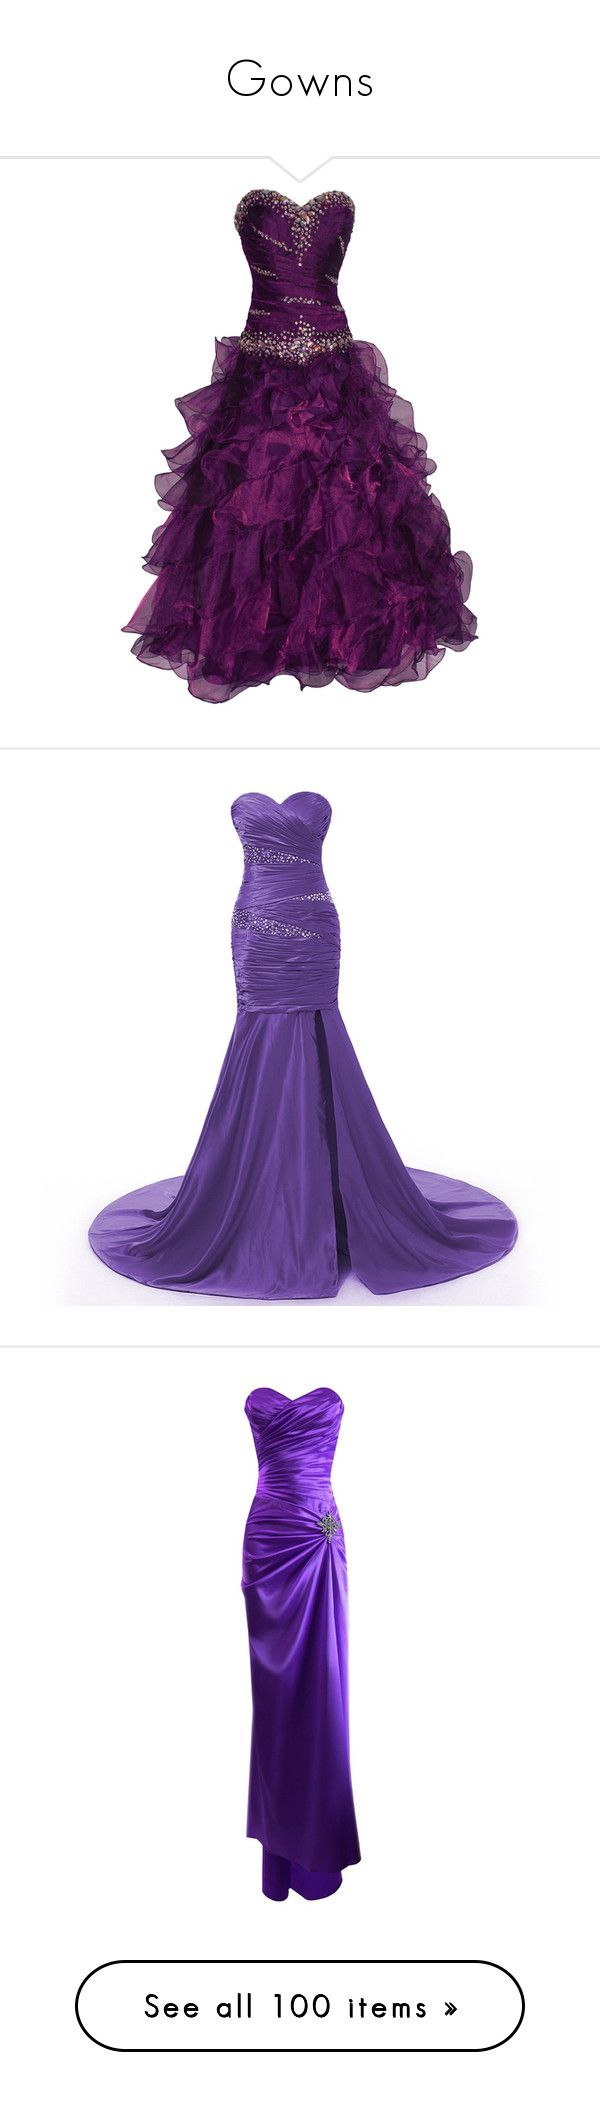 """""""Gowns"""" by annieairwolf ❤ liked on Polyvore featuring dresses, gowns, vestidos, robes, long dresses, purple ball gowns, purple evening dress, prom gowns, beaded gowns and long purple dress"""